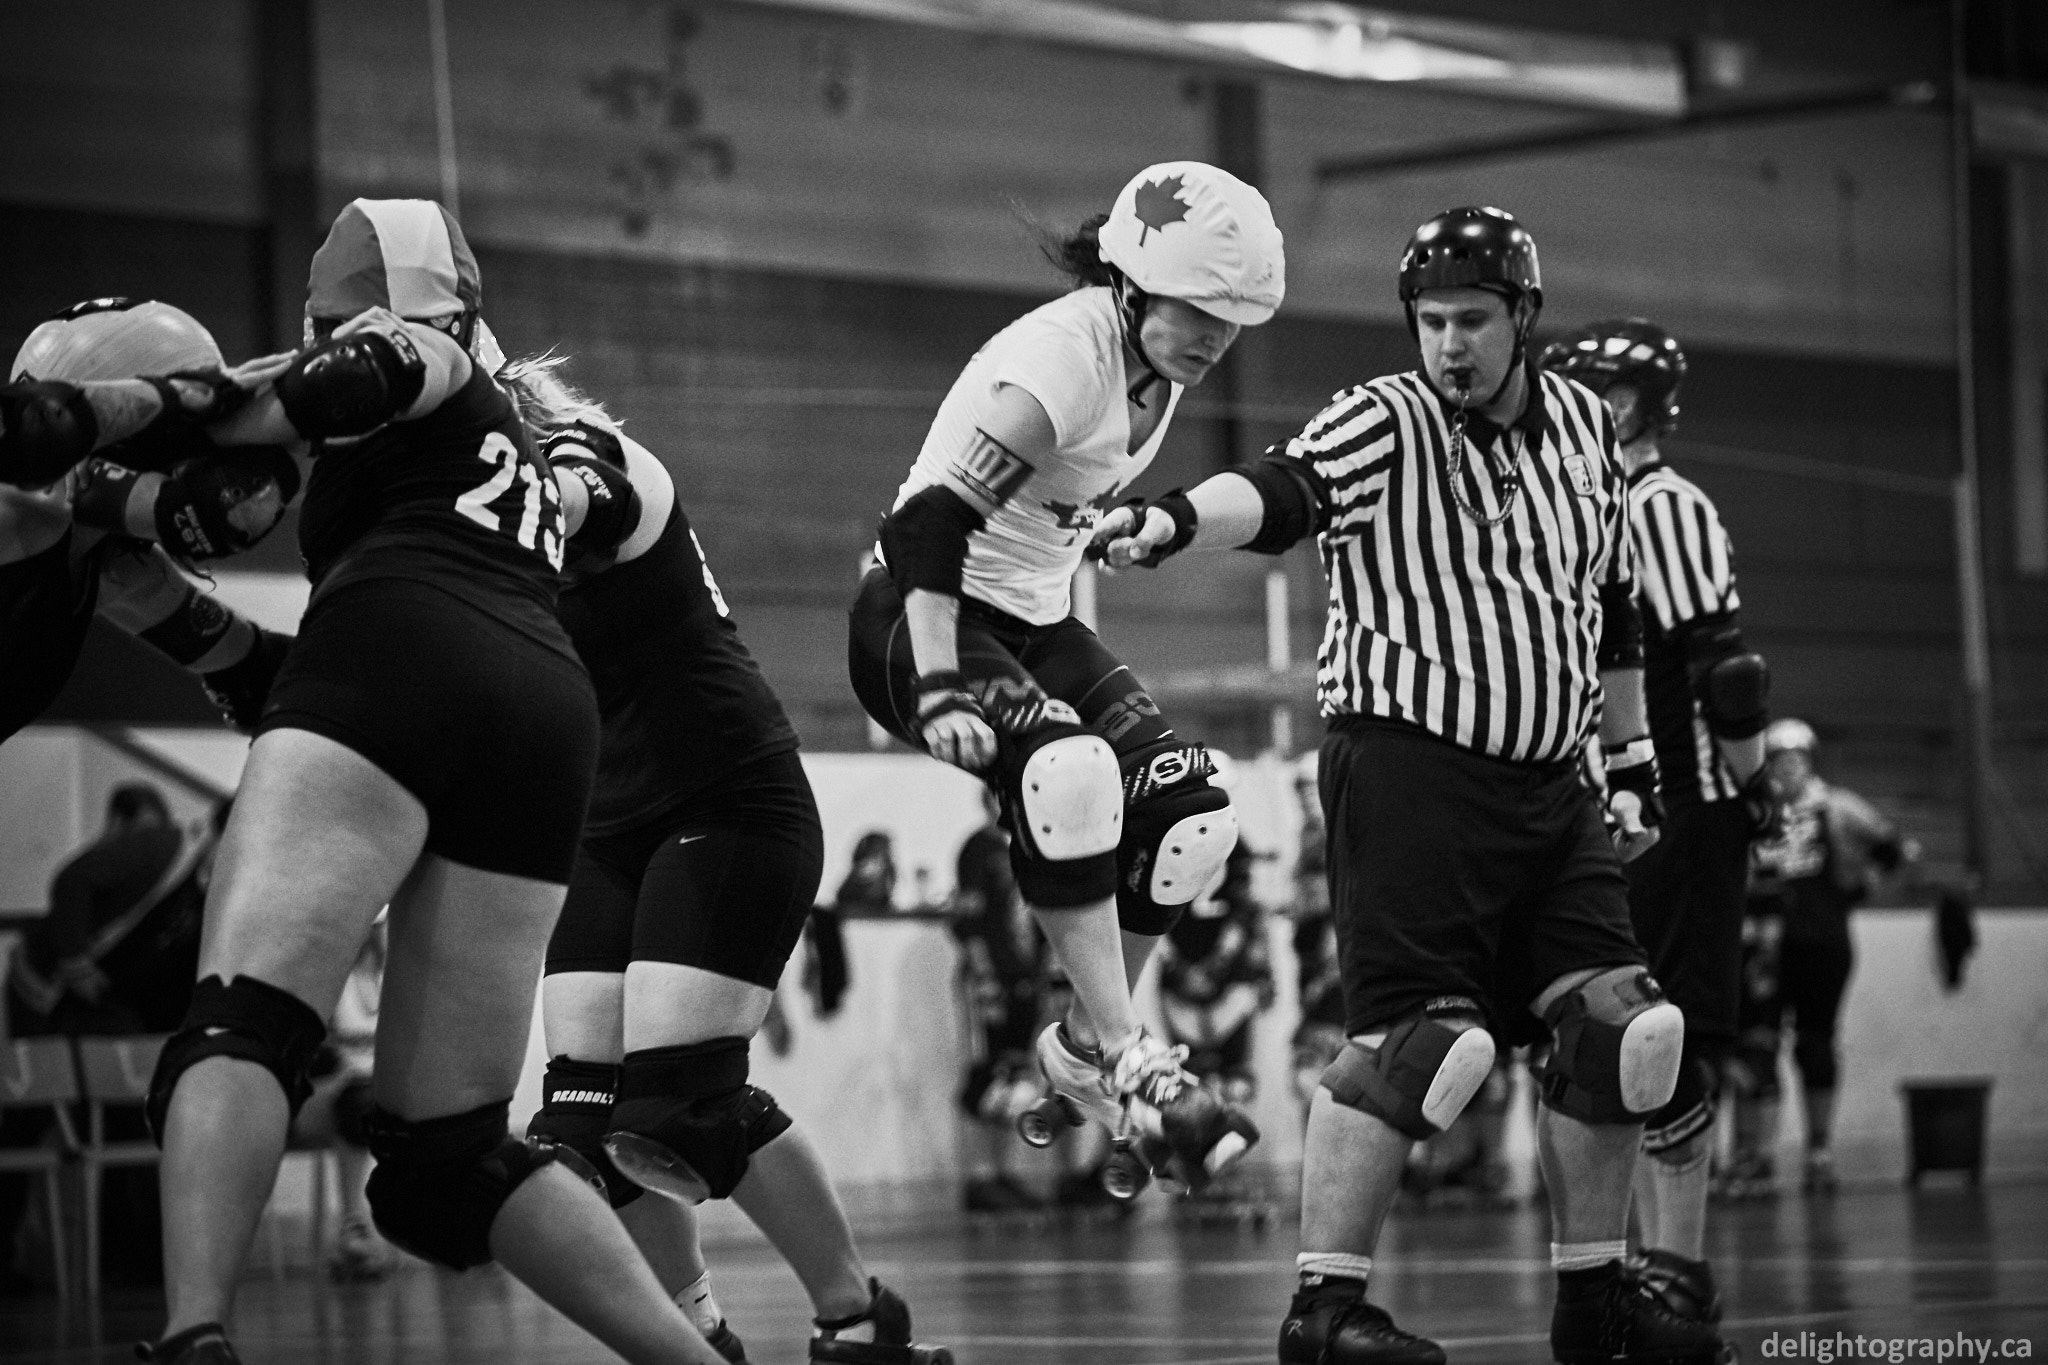 Roller skating quebec city - Team Canada Women S Roller Derby Eastern Tryout At Rockland Arena Rockland Ontario 16